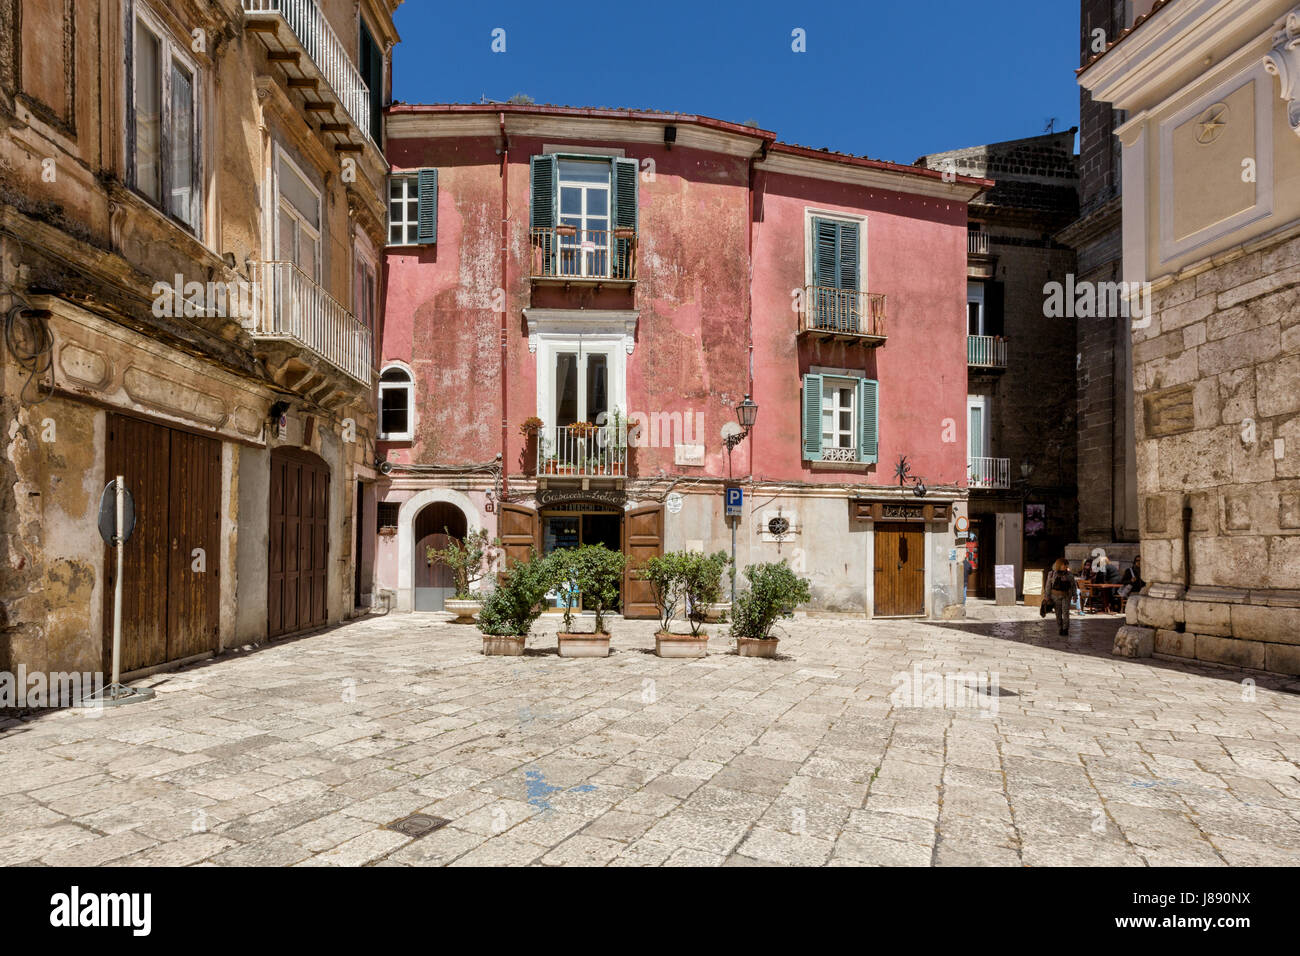 Sant'Agata dei Goti (Benevento, Italy) - View of the old town, Saint Alfonso square Stock Photo